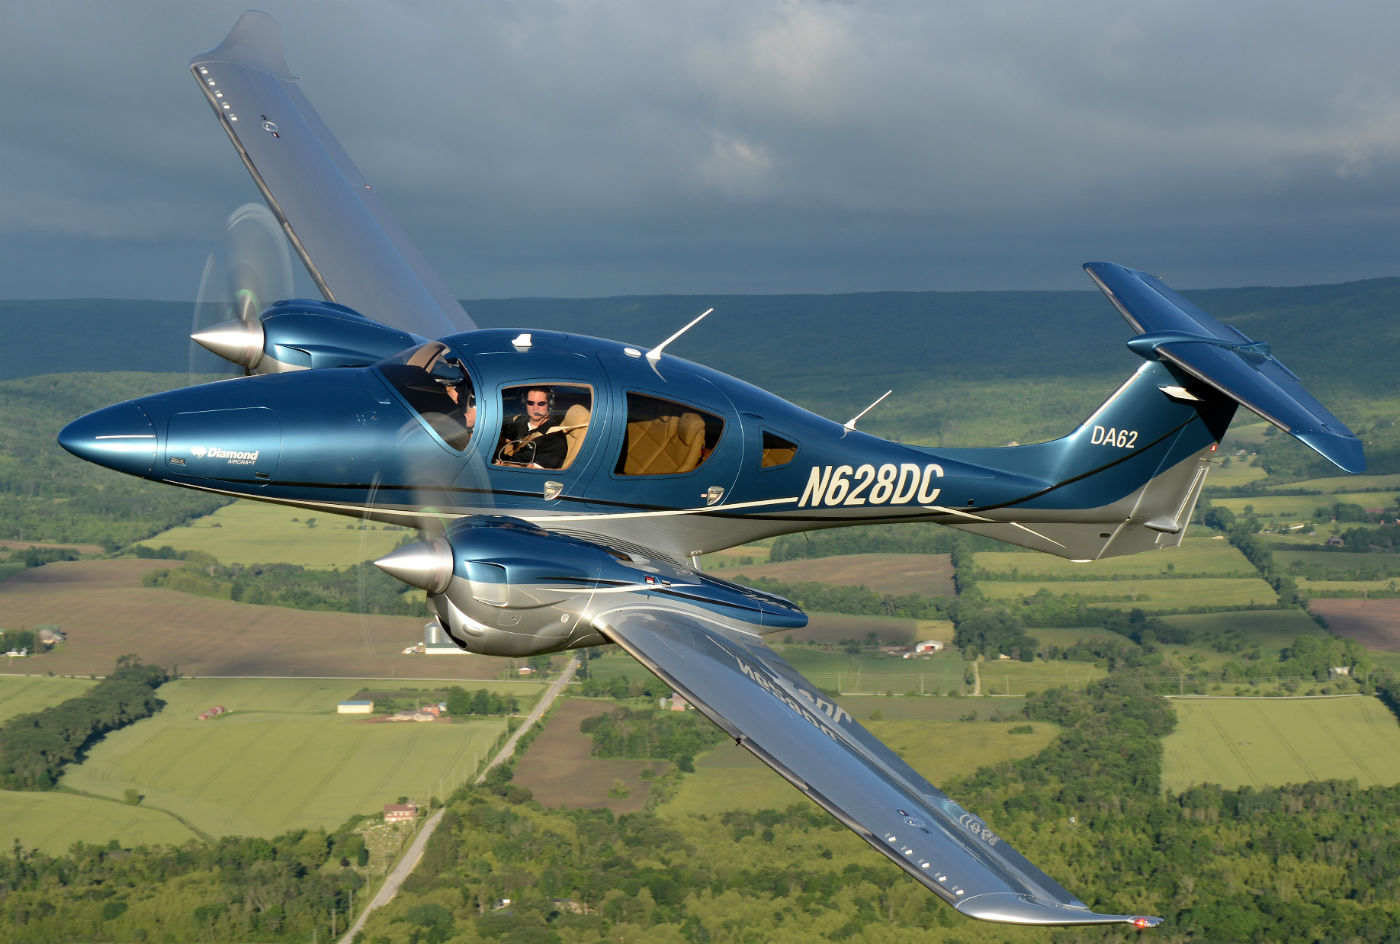 The Diamond DA62 will now be built in London, Ont. Eric Dumigan Photo